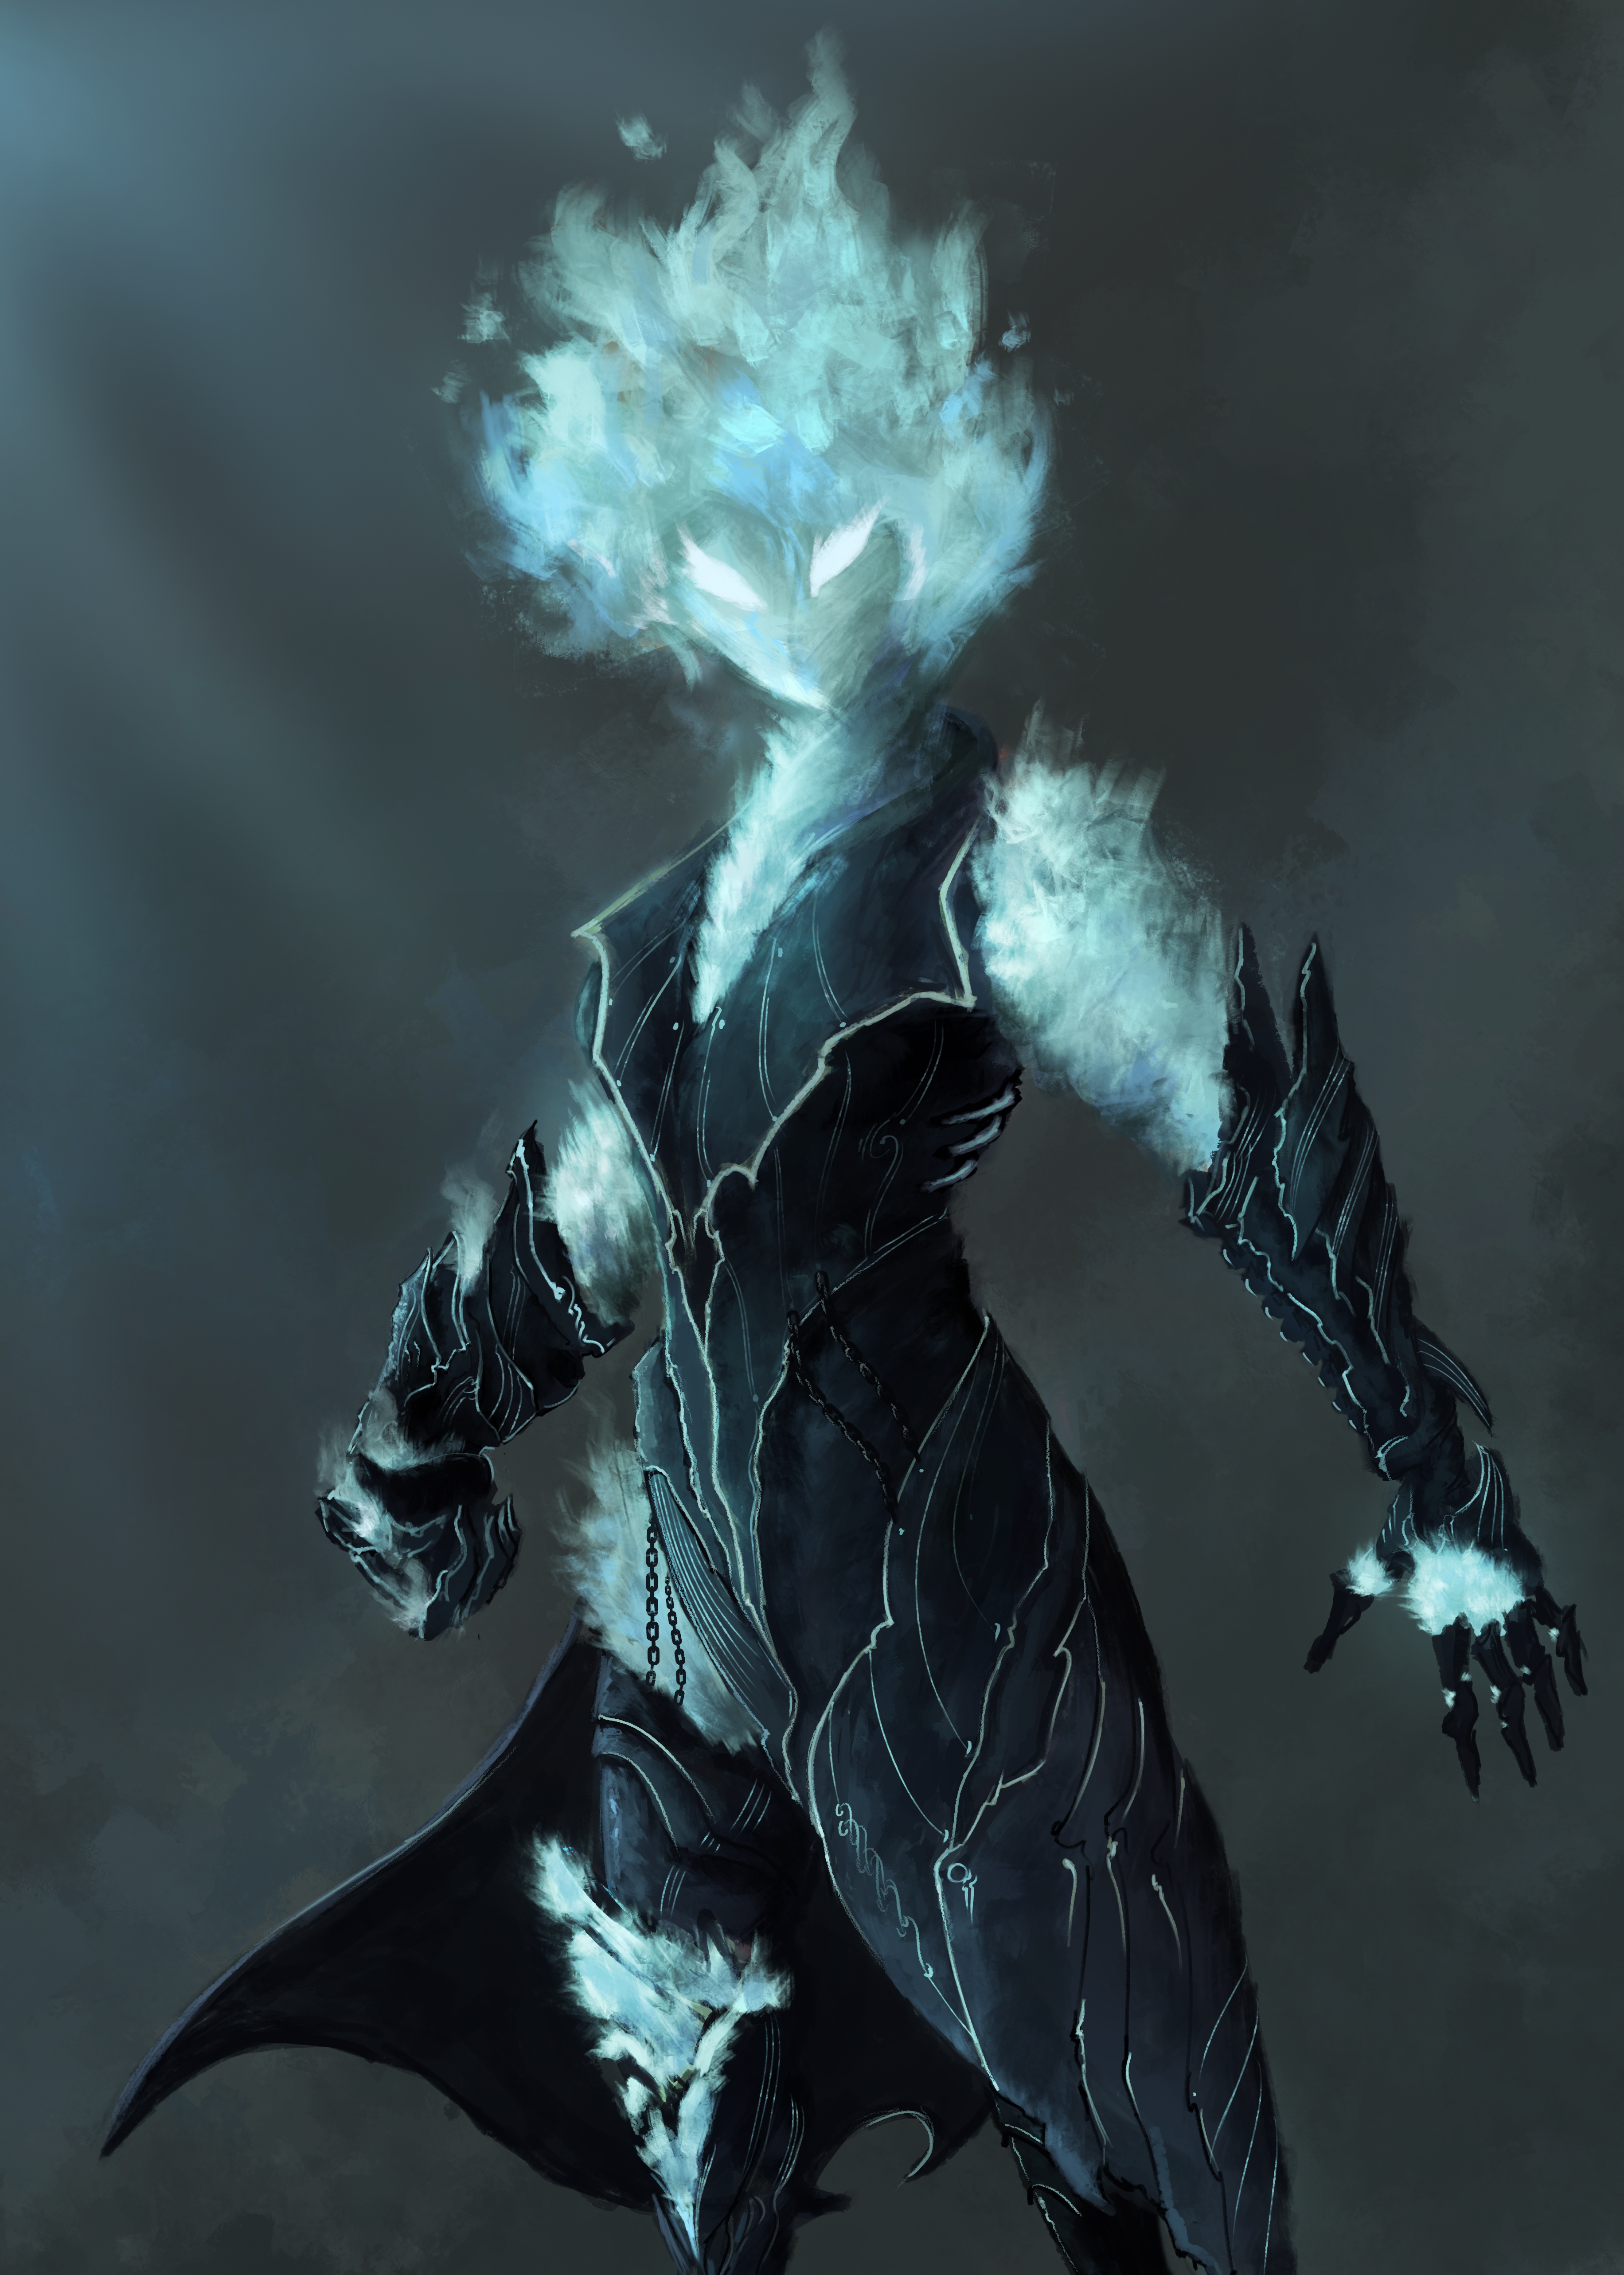 e926 2017 absurd_res armor clothing elemental female fire_elemental gauntlets gloves hi_res humanoid looking_at_viewer not_furry solo sprinkah standing